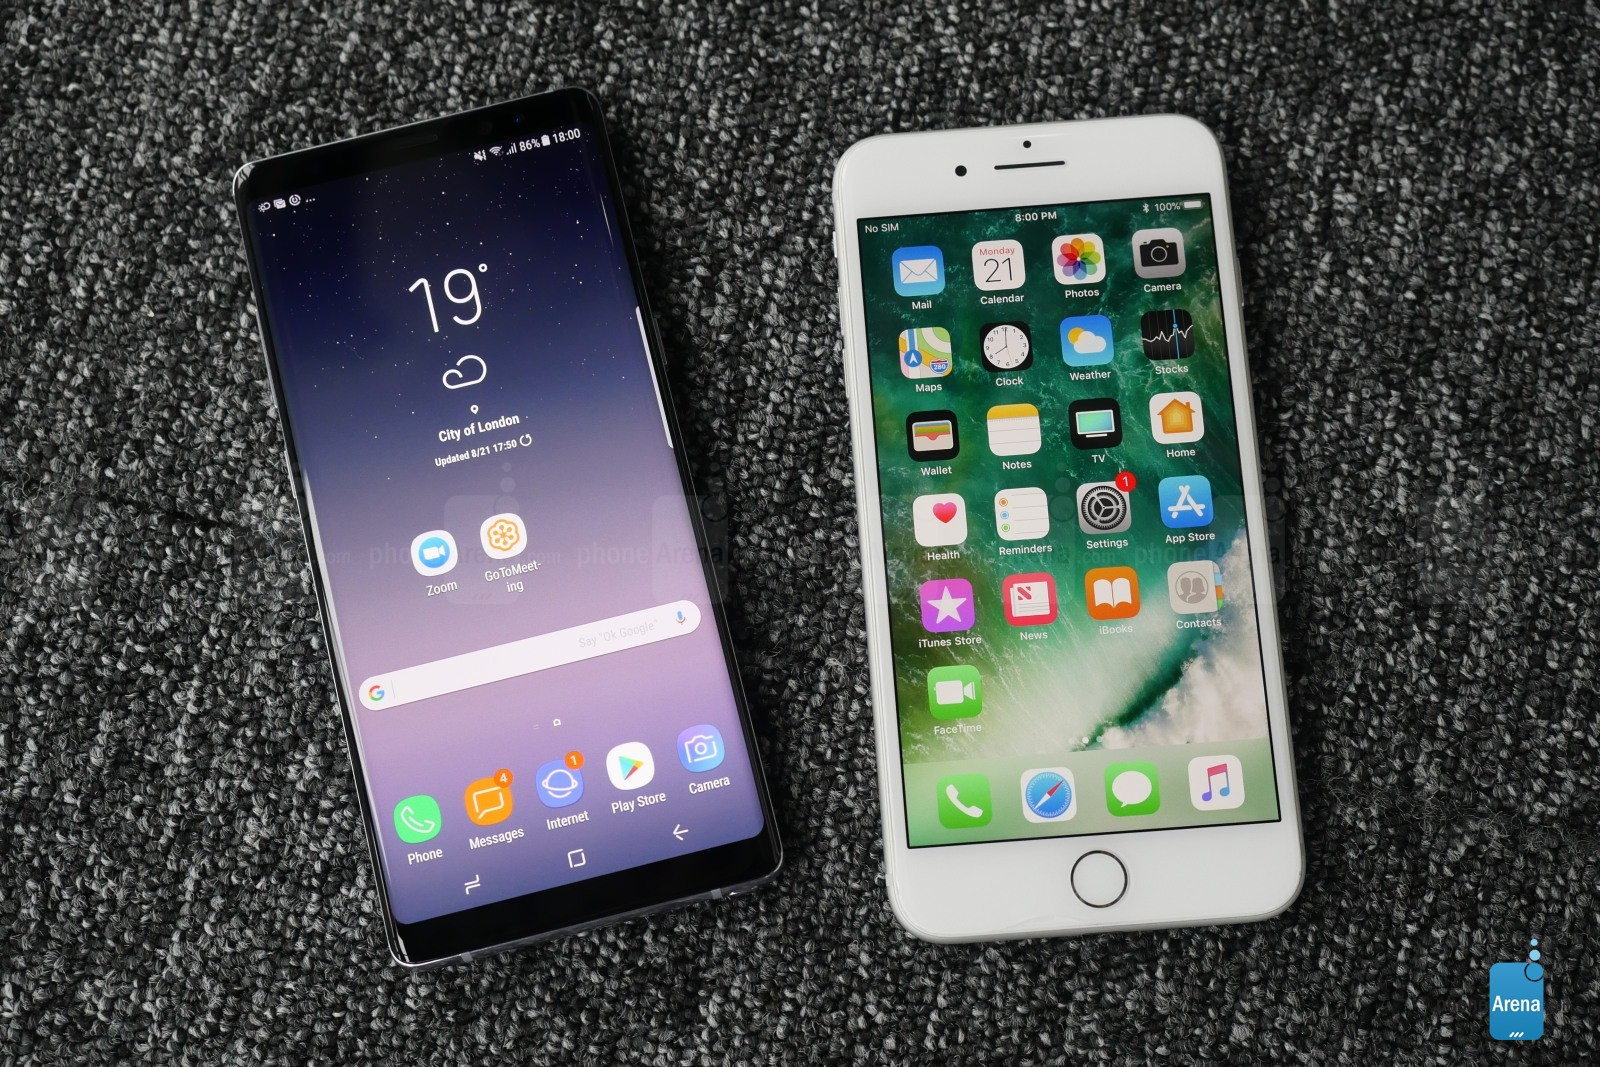 Samsung Galaxy Note 8 comparatie iPhone 7 Plus 2